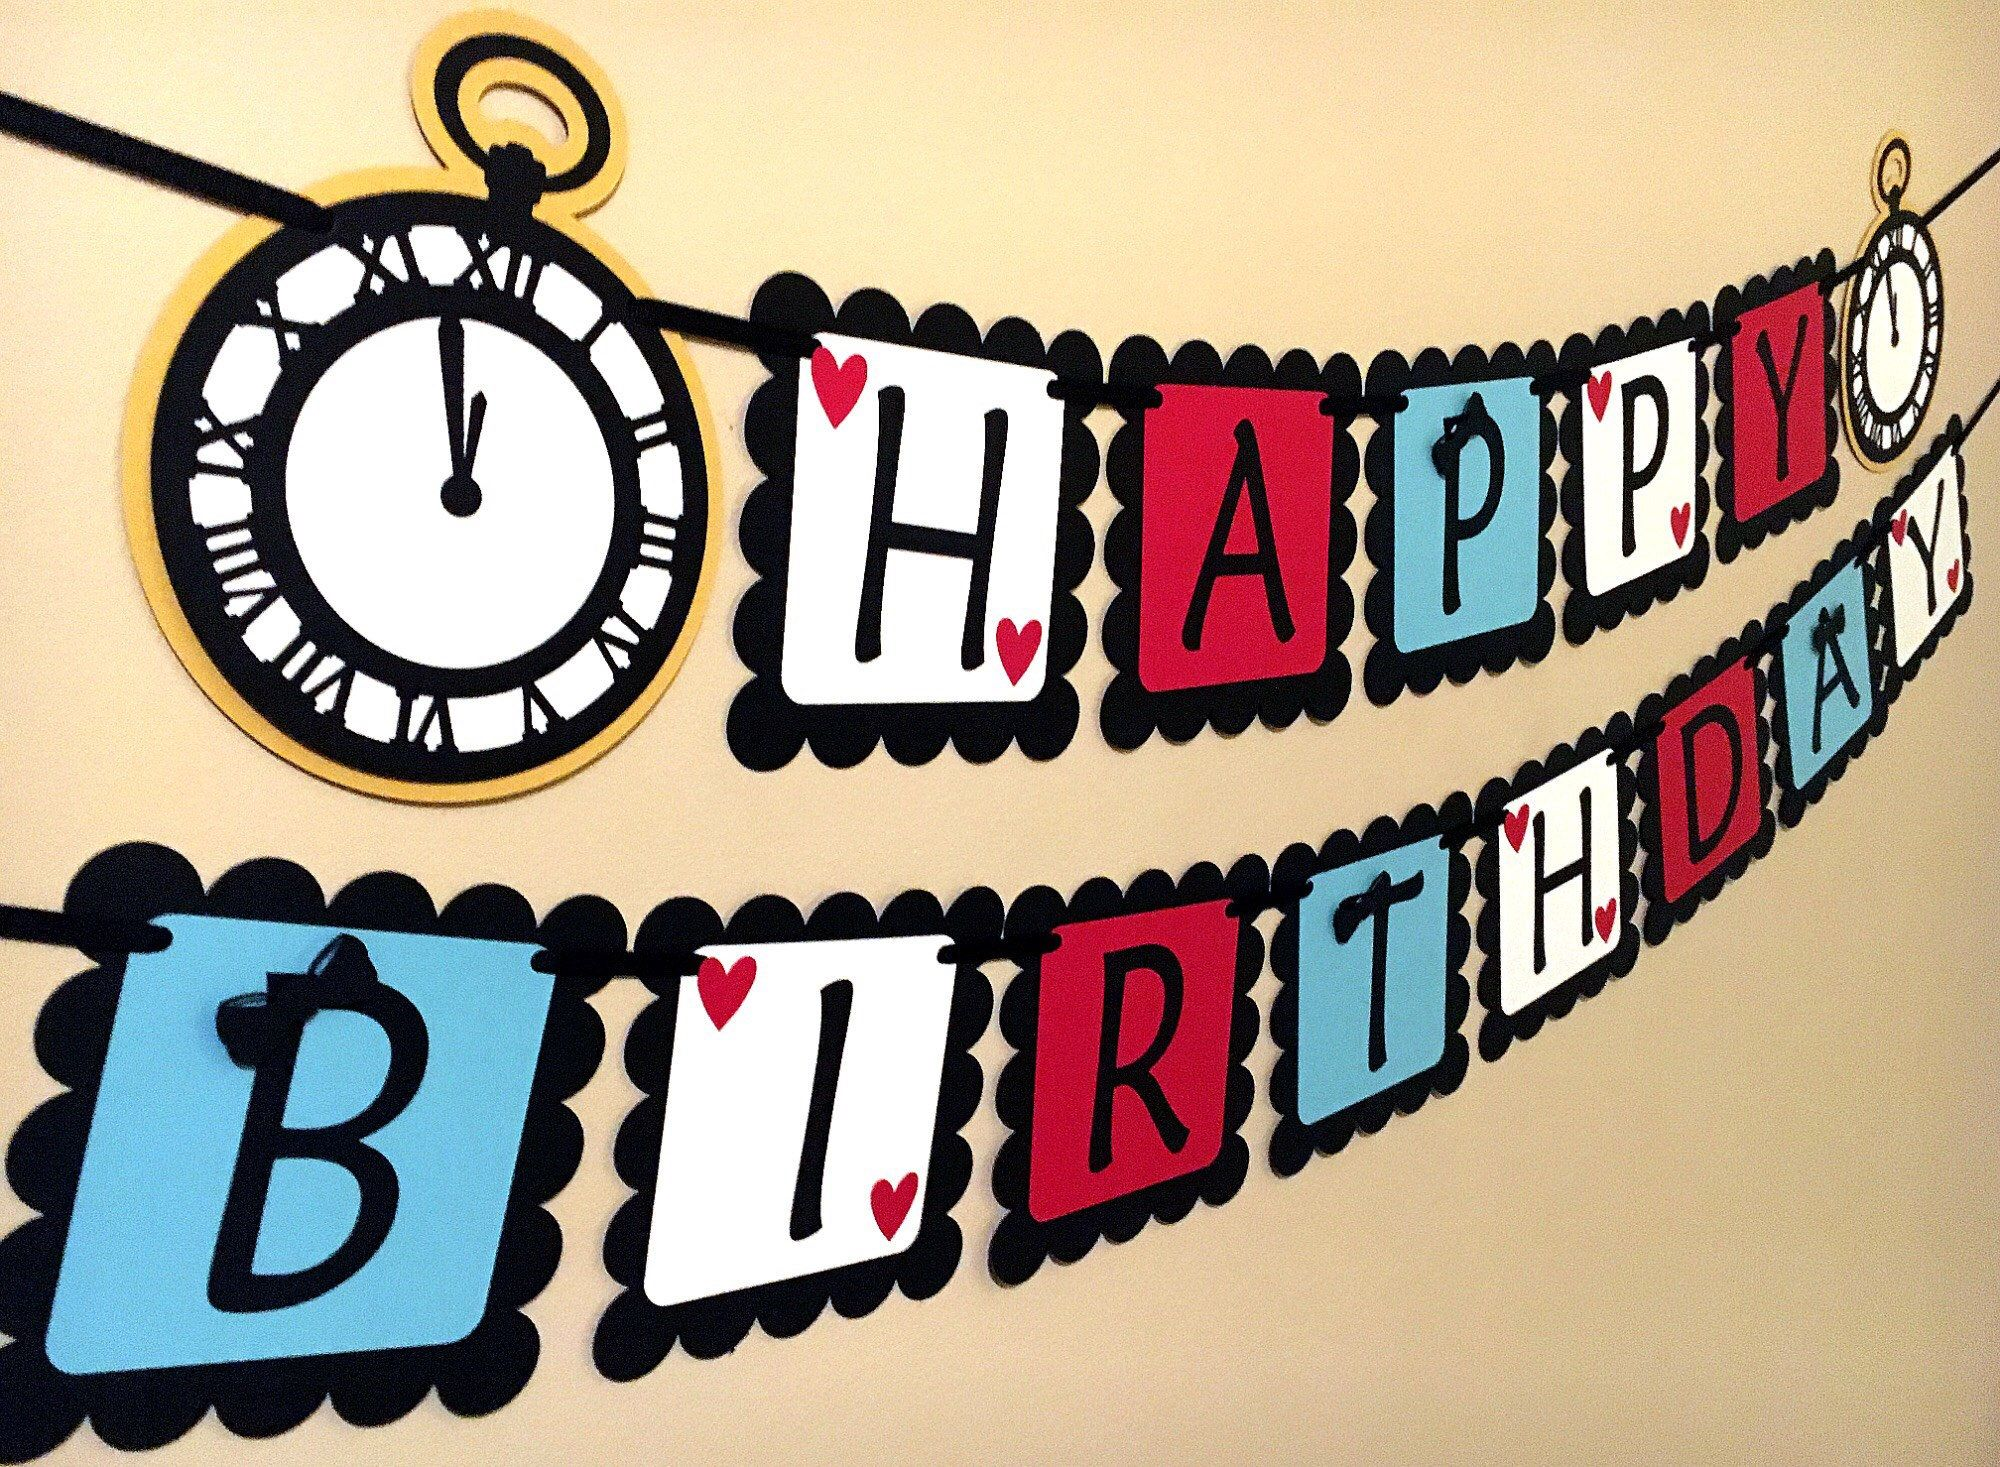 etsy happy birthday banner ; 36821b79e97d35bb268078b36f5564c5